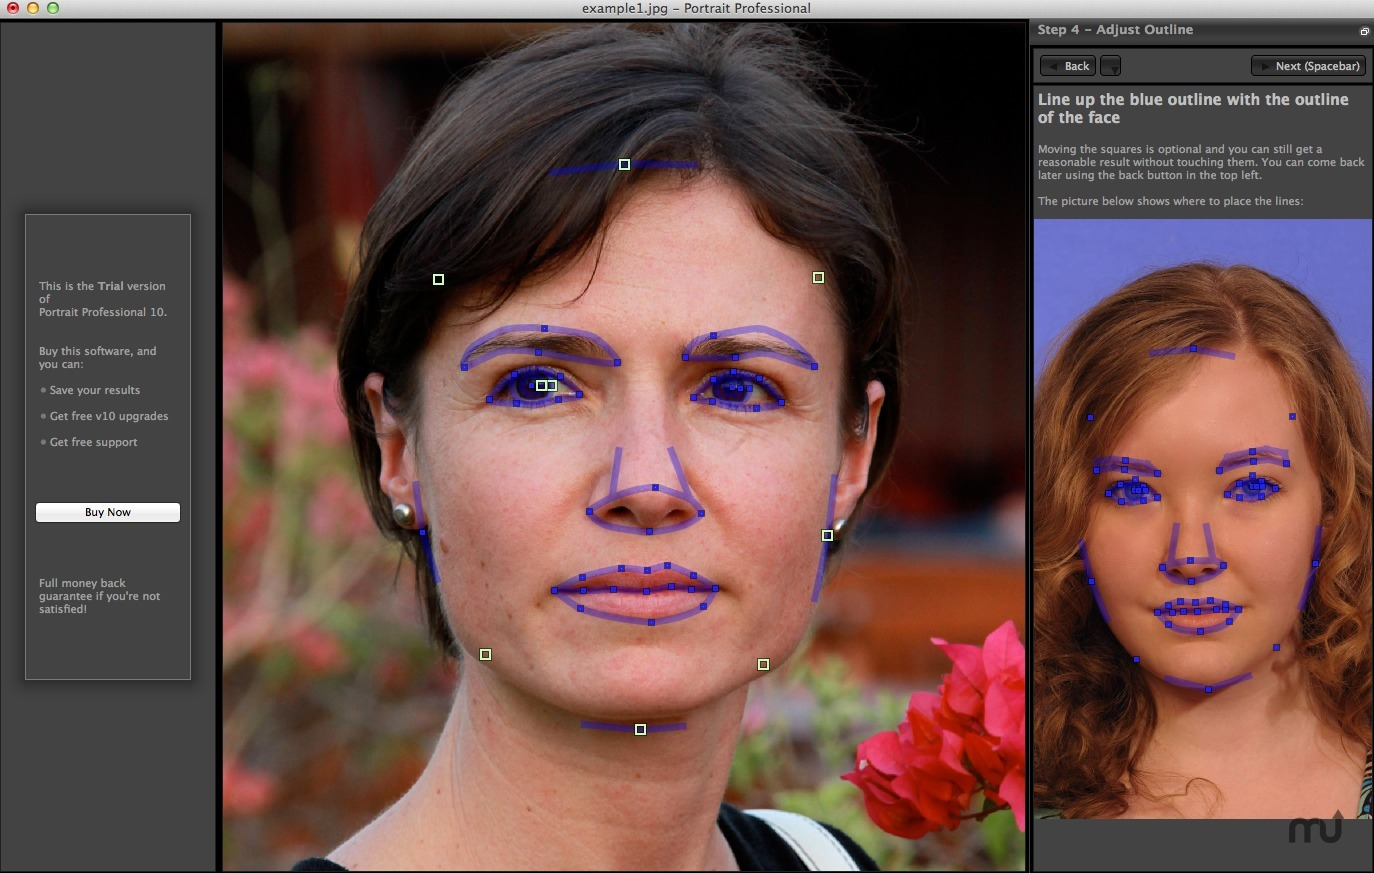 portrait professional free download full version 10 with crack